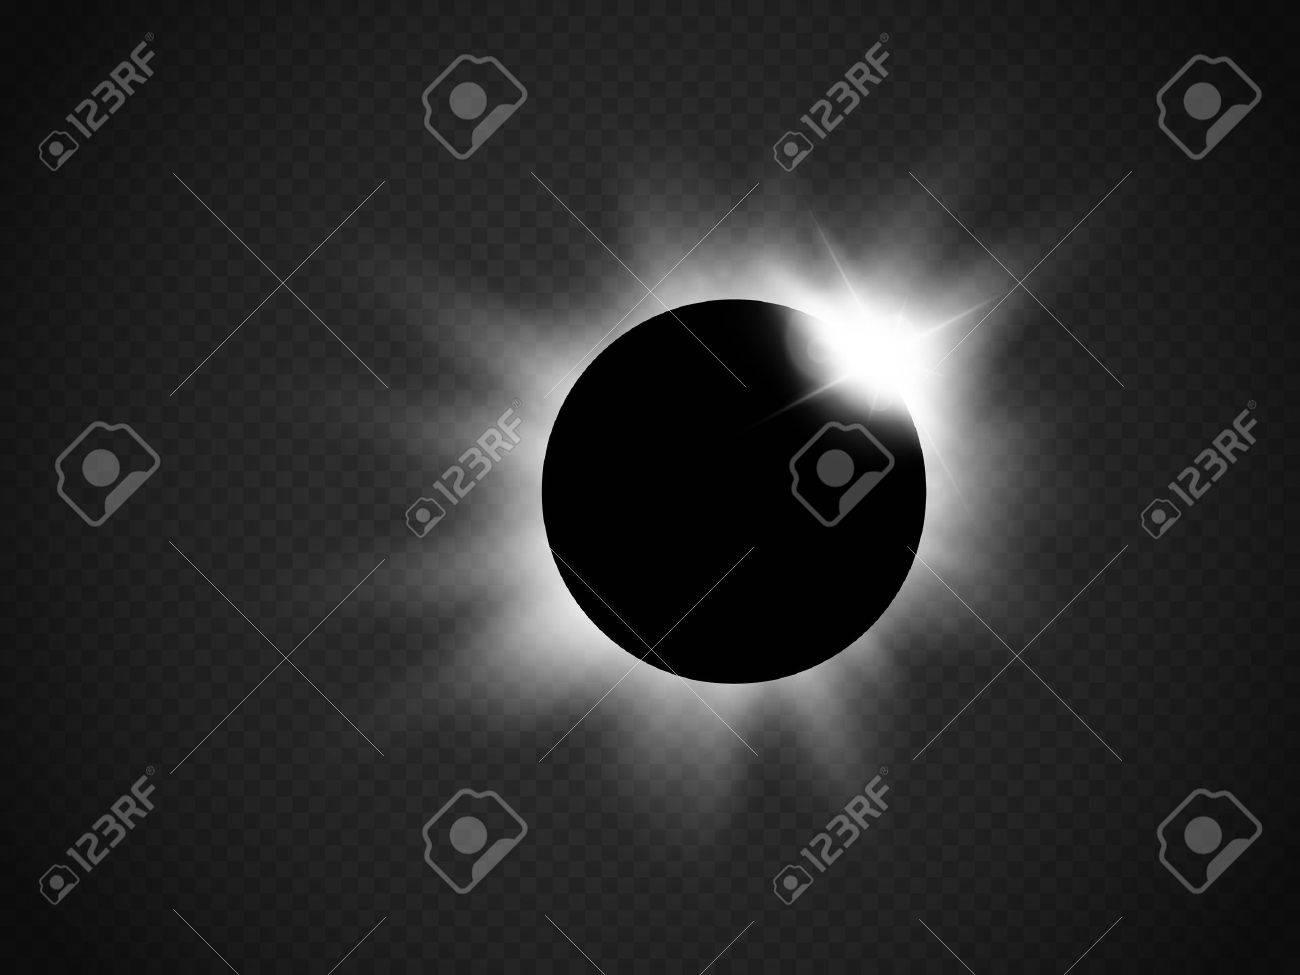 Sun eclipse isolated on transparent background. Vector illustration.